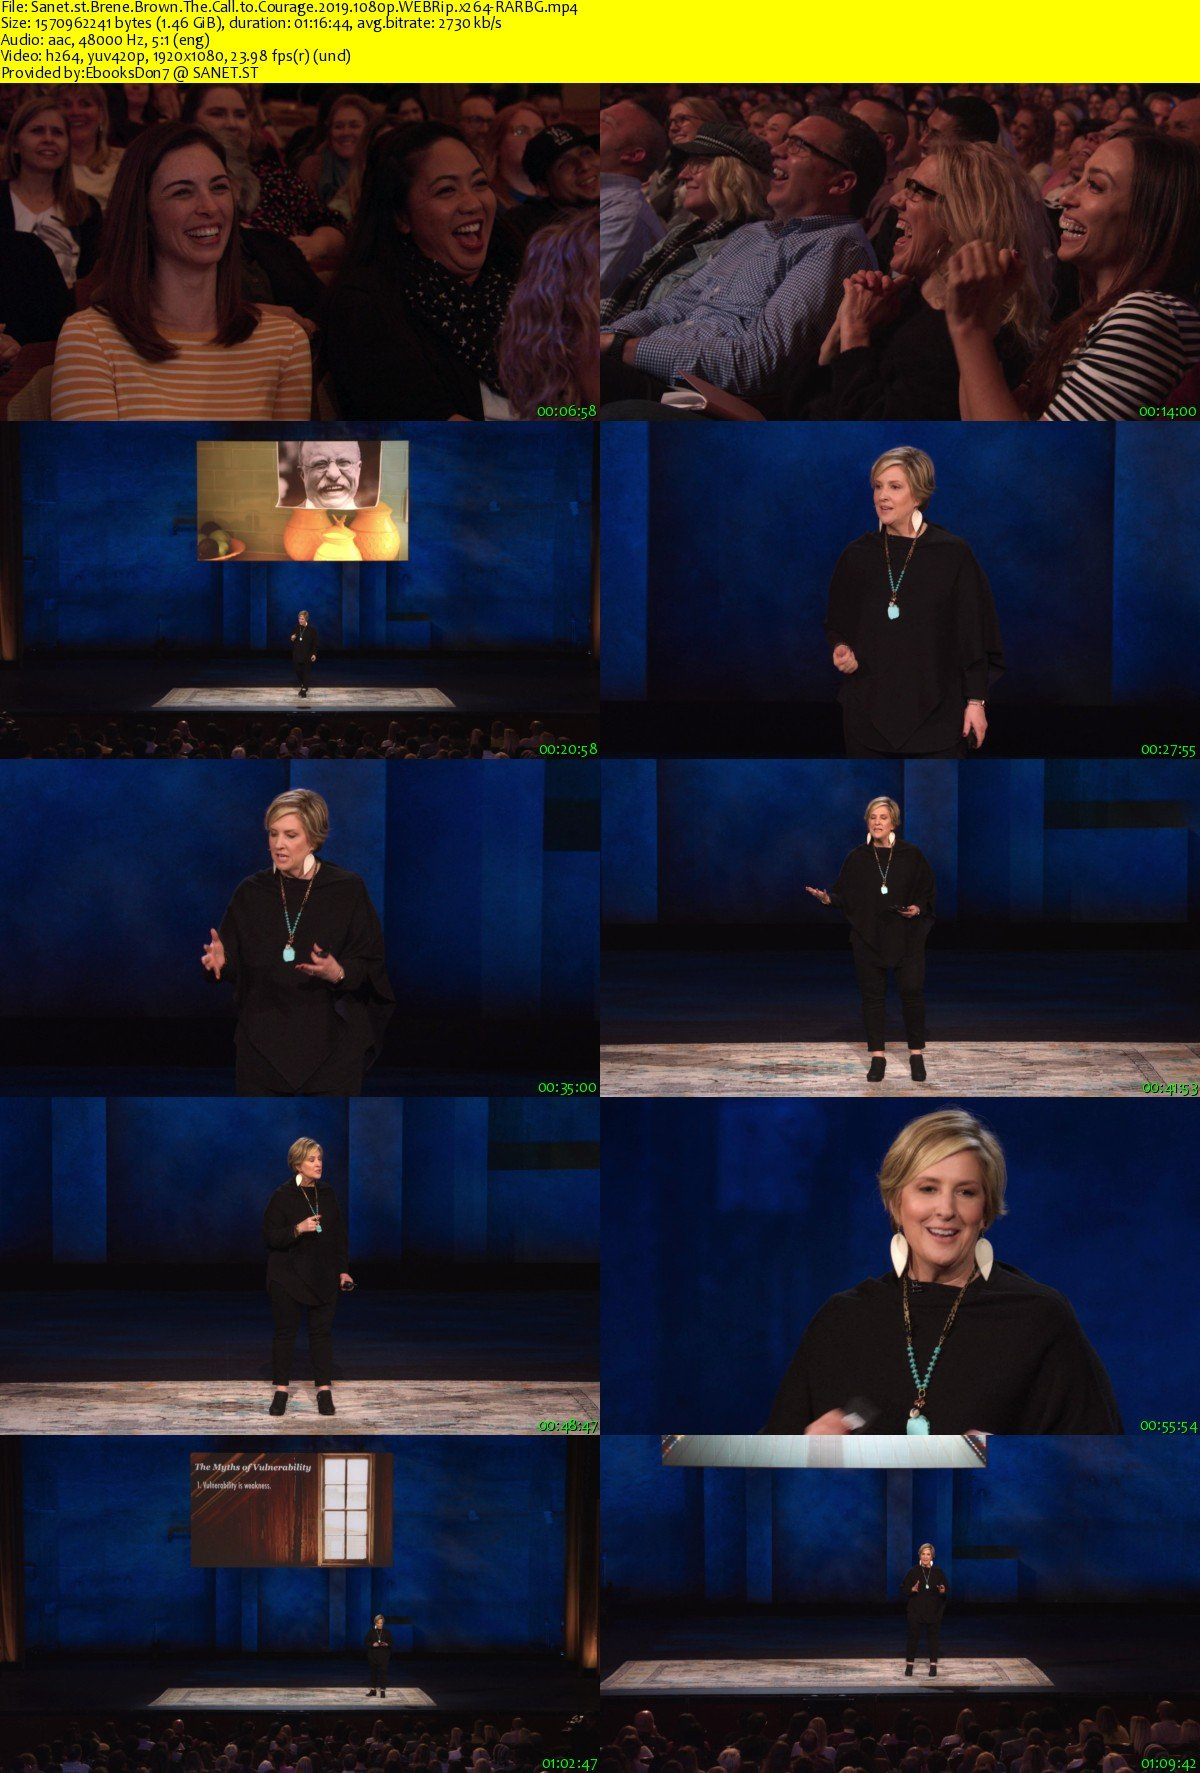 Download Brene Brown The Call to Courage 2019 1080p WEBRip x264